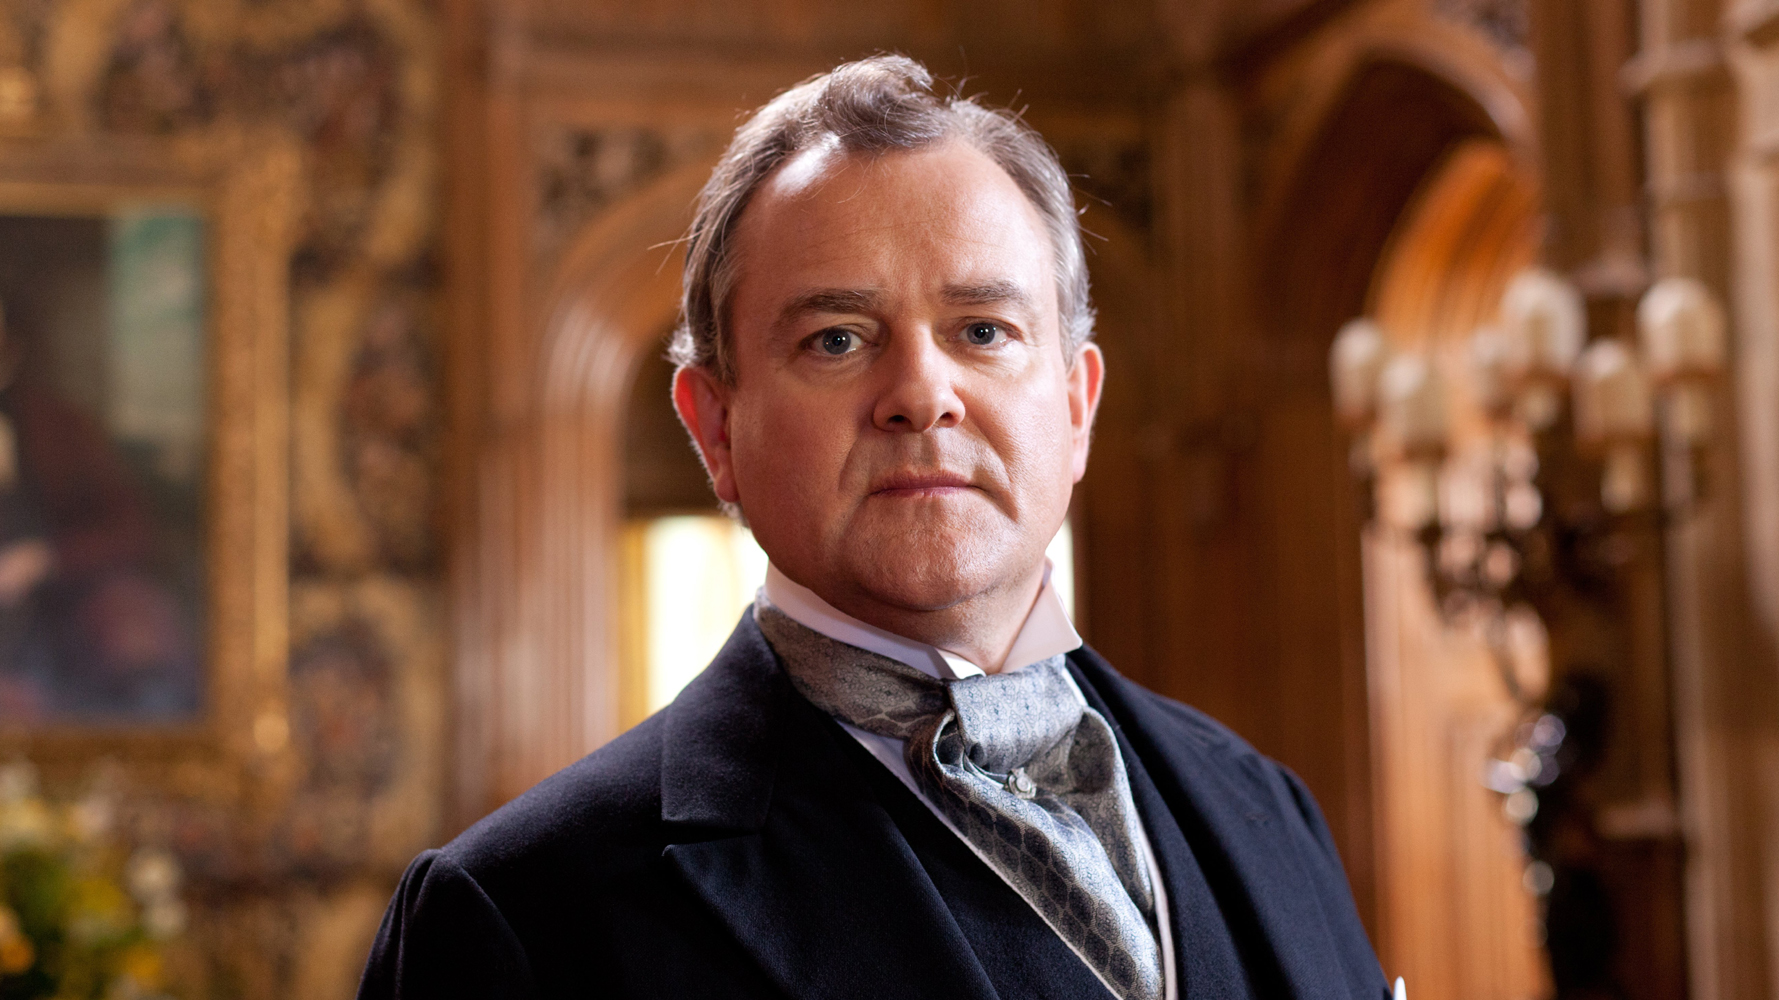 hugh bonneville instagramhugh bonneville net worth, hugh bonneville height, hugh bonneville lord grantham, hugh bonneville wife, hugh bonneville son, hugh bonneville hugh grant, hugh bonneville instagram, hugh bonneville lulu evans, hugh bonneville grand tour, hugh bonneville audiobook, hugh bonneville, hugh bonneville notting hill, hugh bonneville movies, hugh bonneville young, hugh bonneville downton abbey, hugh bonneville harry potter, hugh bonneville midsomer murders, hugh bonneville twitter, hugh bonneville doctor who, hugh bonneville tomorrow never dies